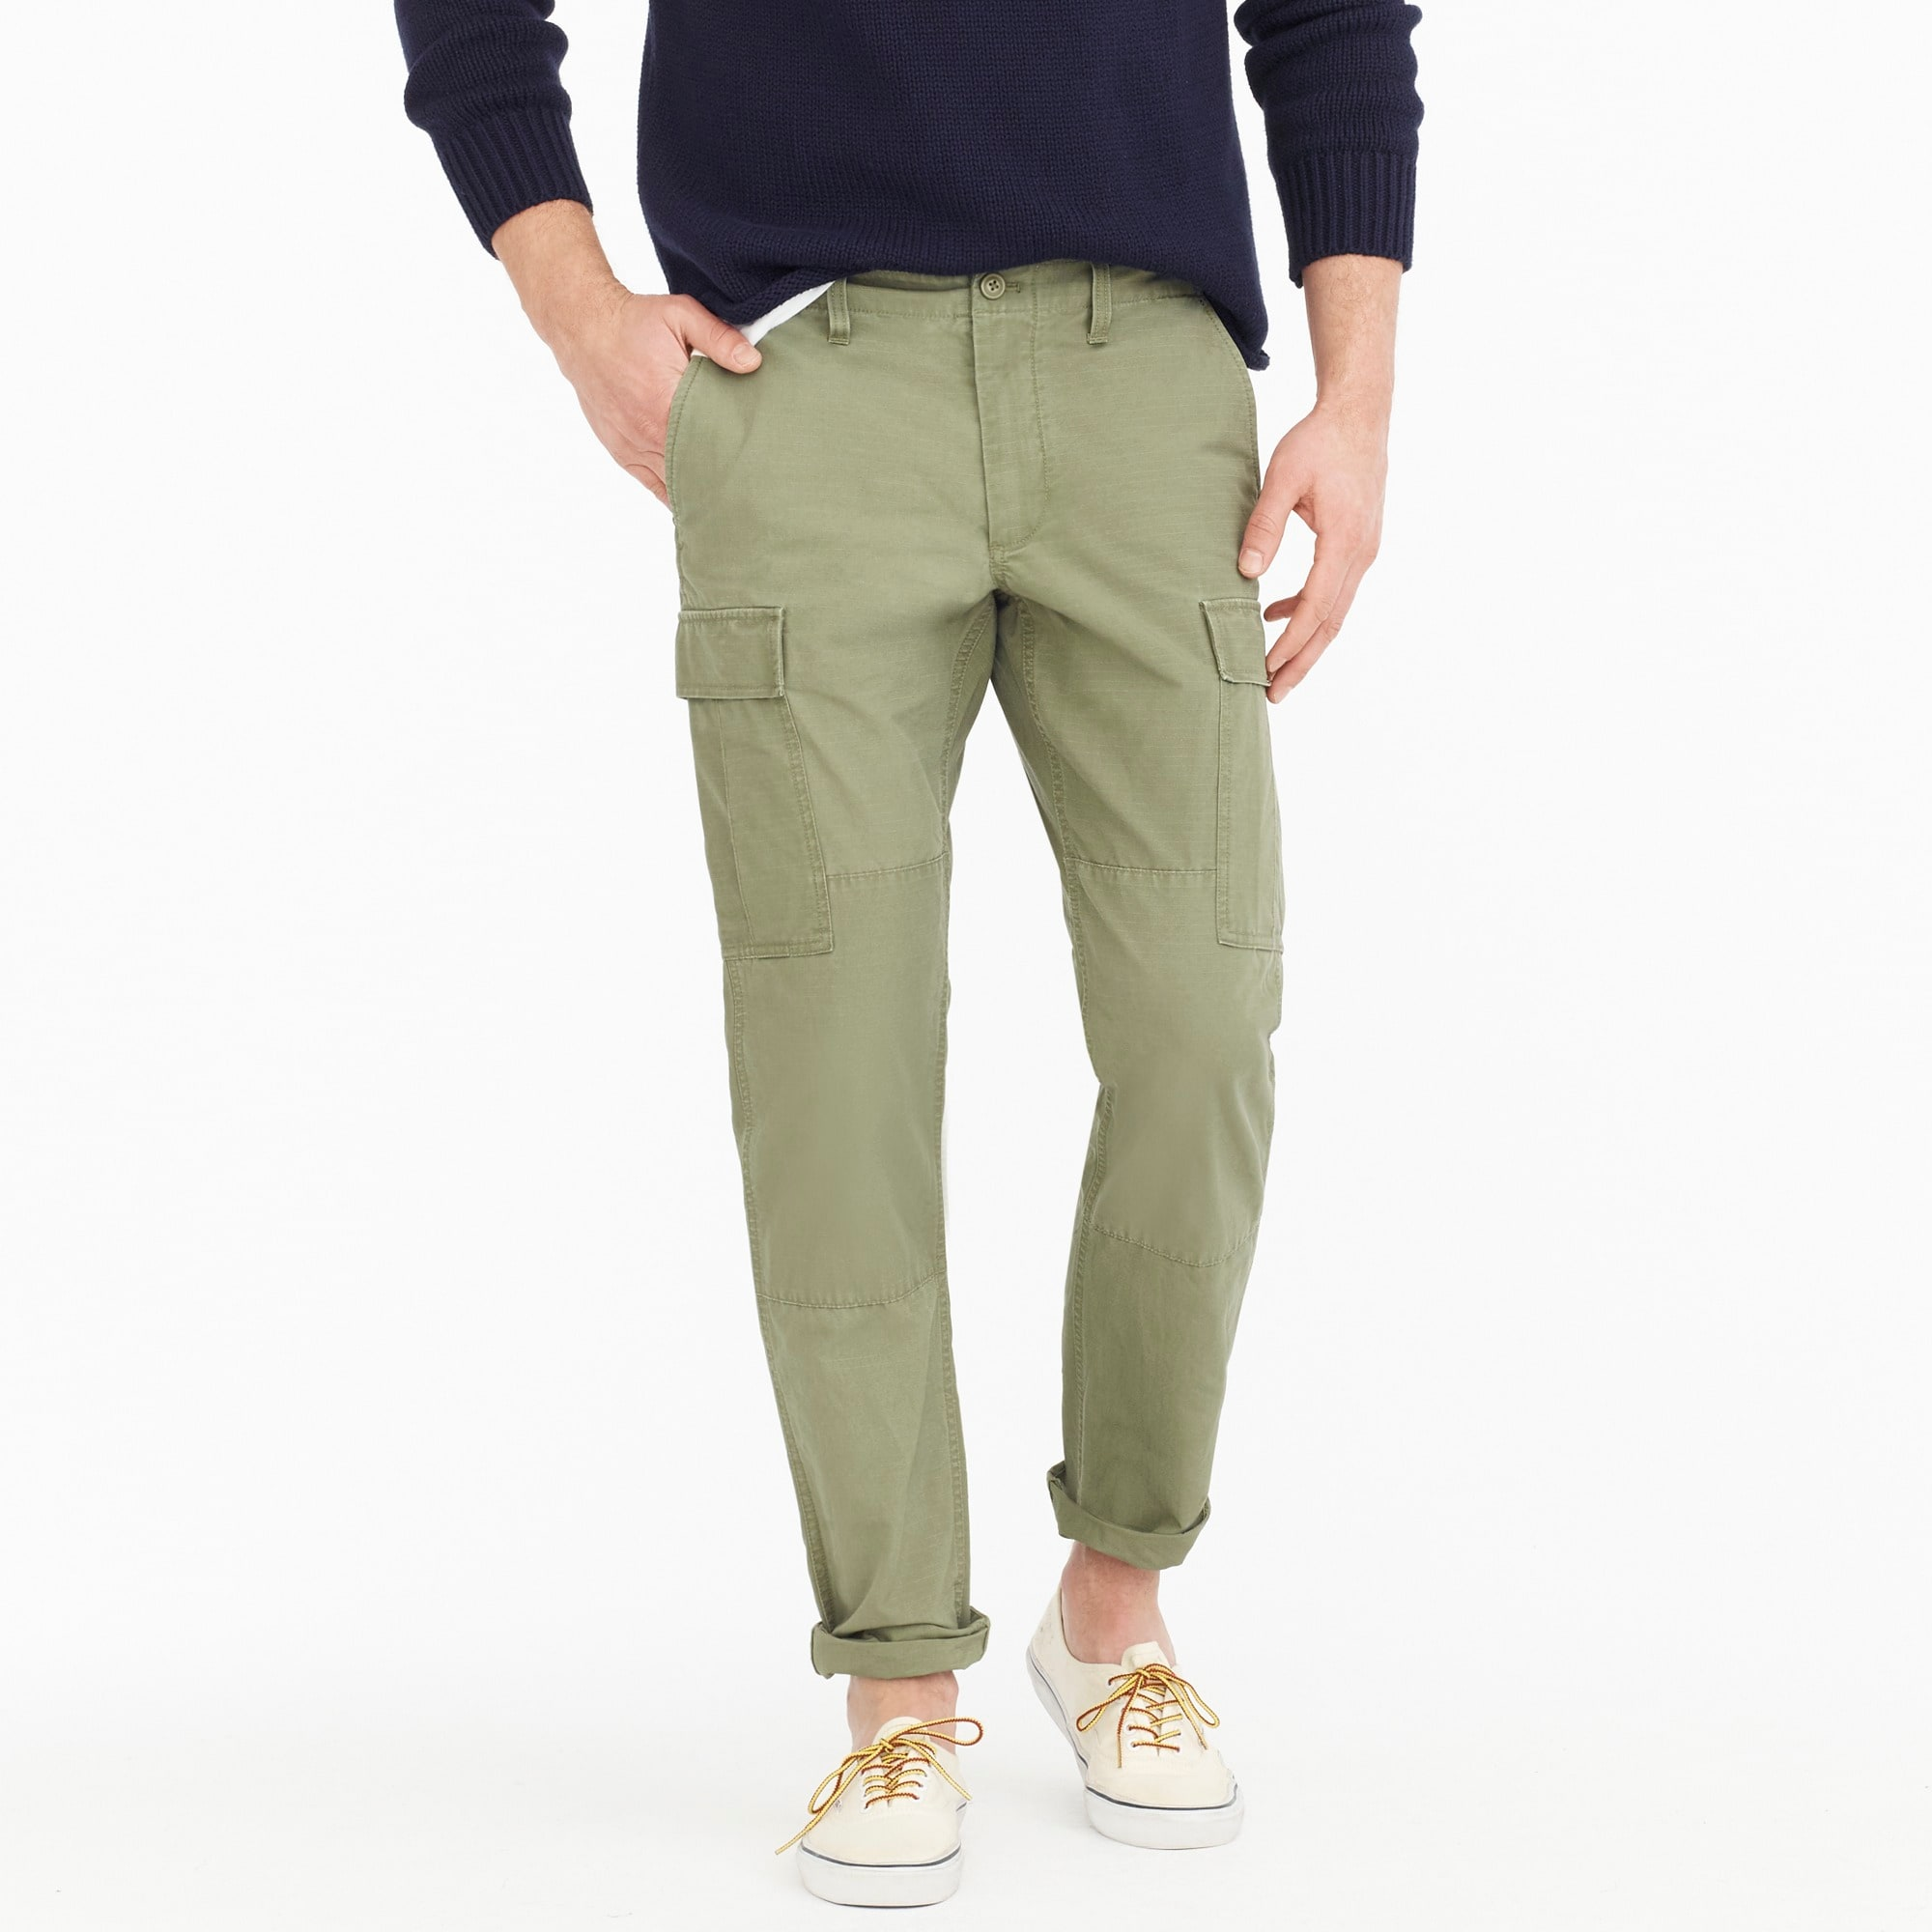 Image 1 for 770 Straight-fit ripstop cargo pant in brigade olive